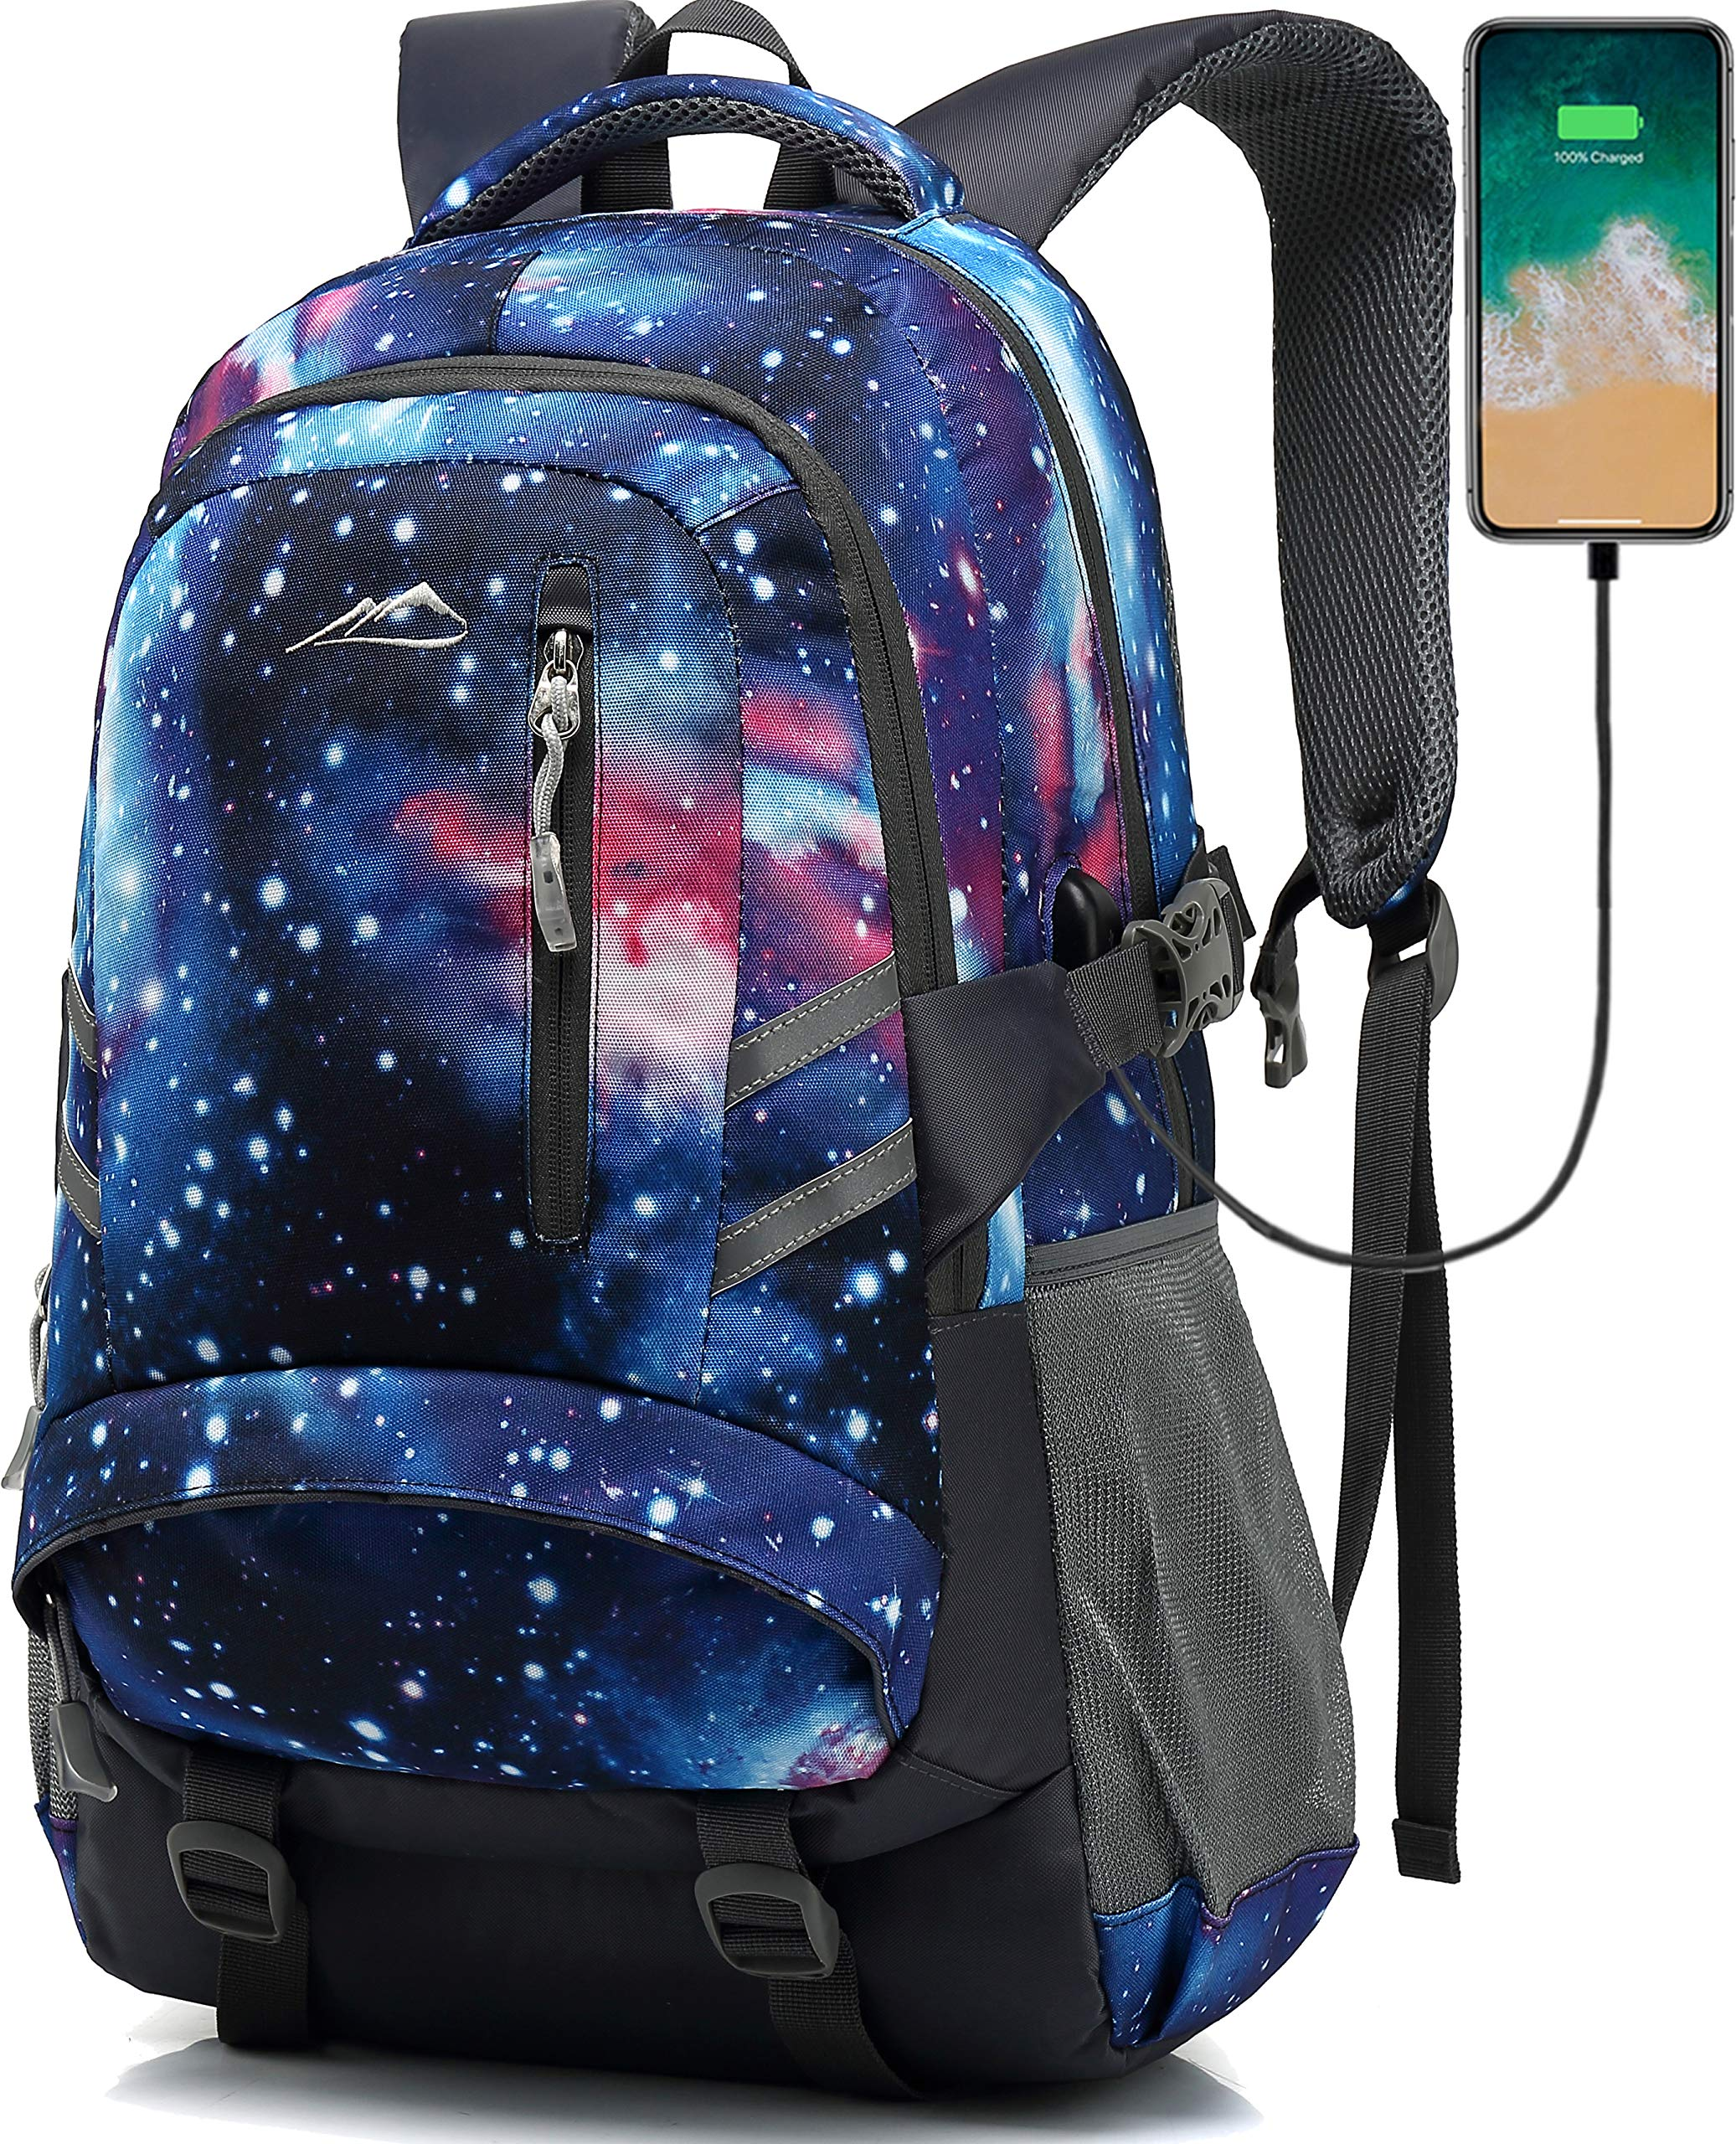 Backpack Bookbag for School Student College Business Travel with USB Charging Port Fit Laptop Up to 15.6 Inch Night Light Reflective Anti Theft (Galaxy) by ANTSANG